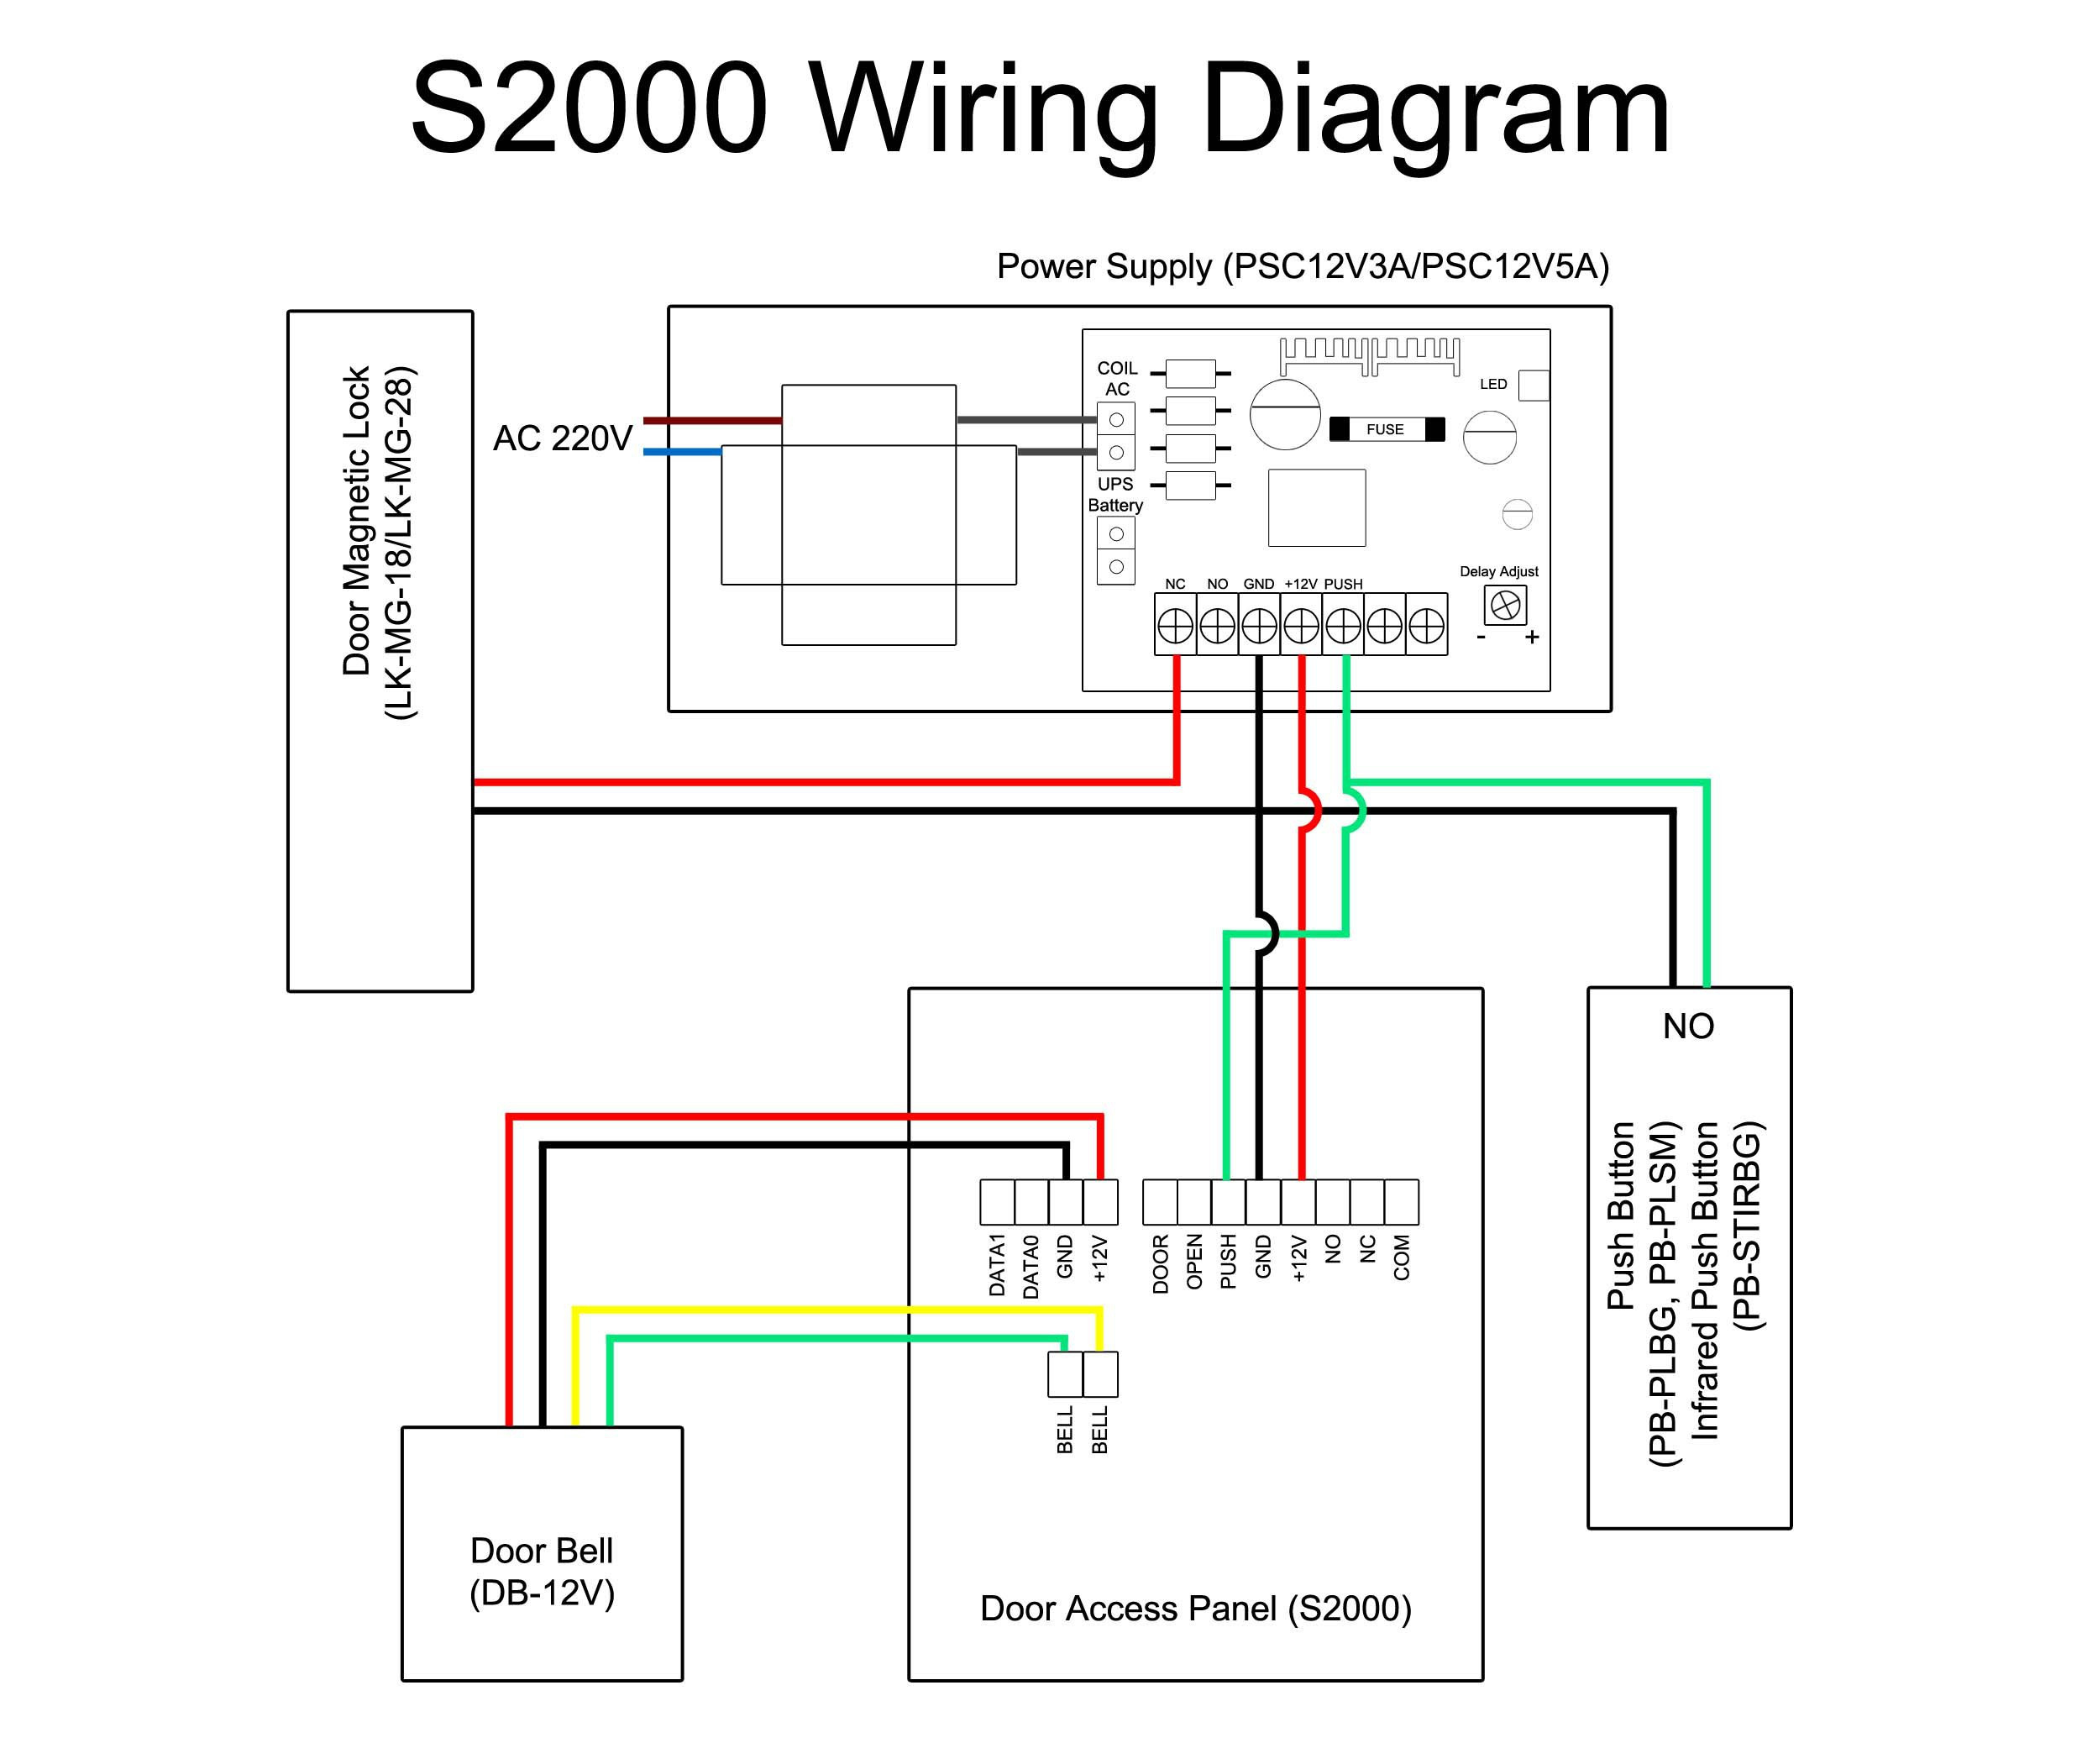 table wiring saw diagram ks48yzek198 catalogue of schemas  ryobi table saw wiring diagram wiring